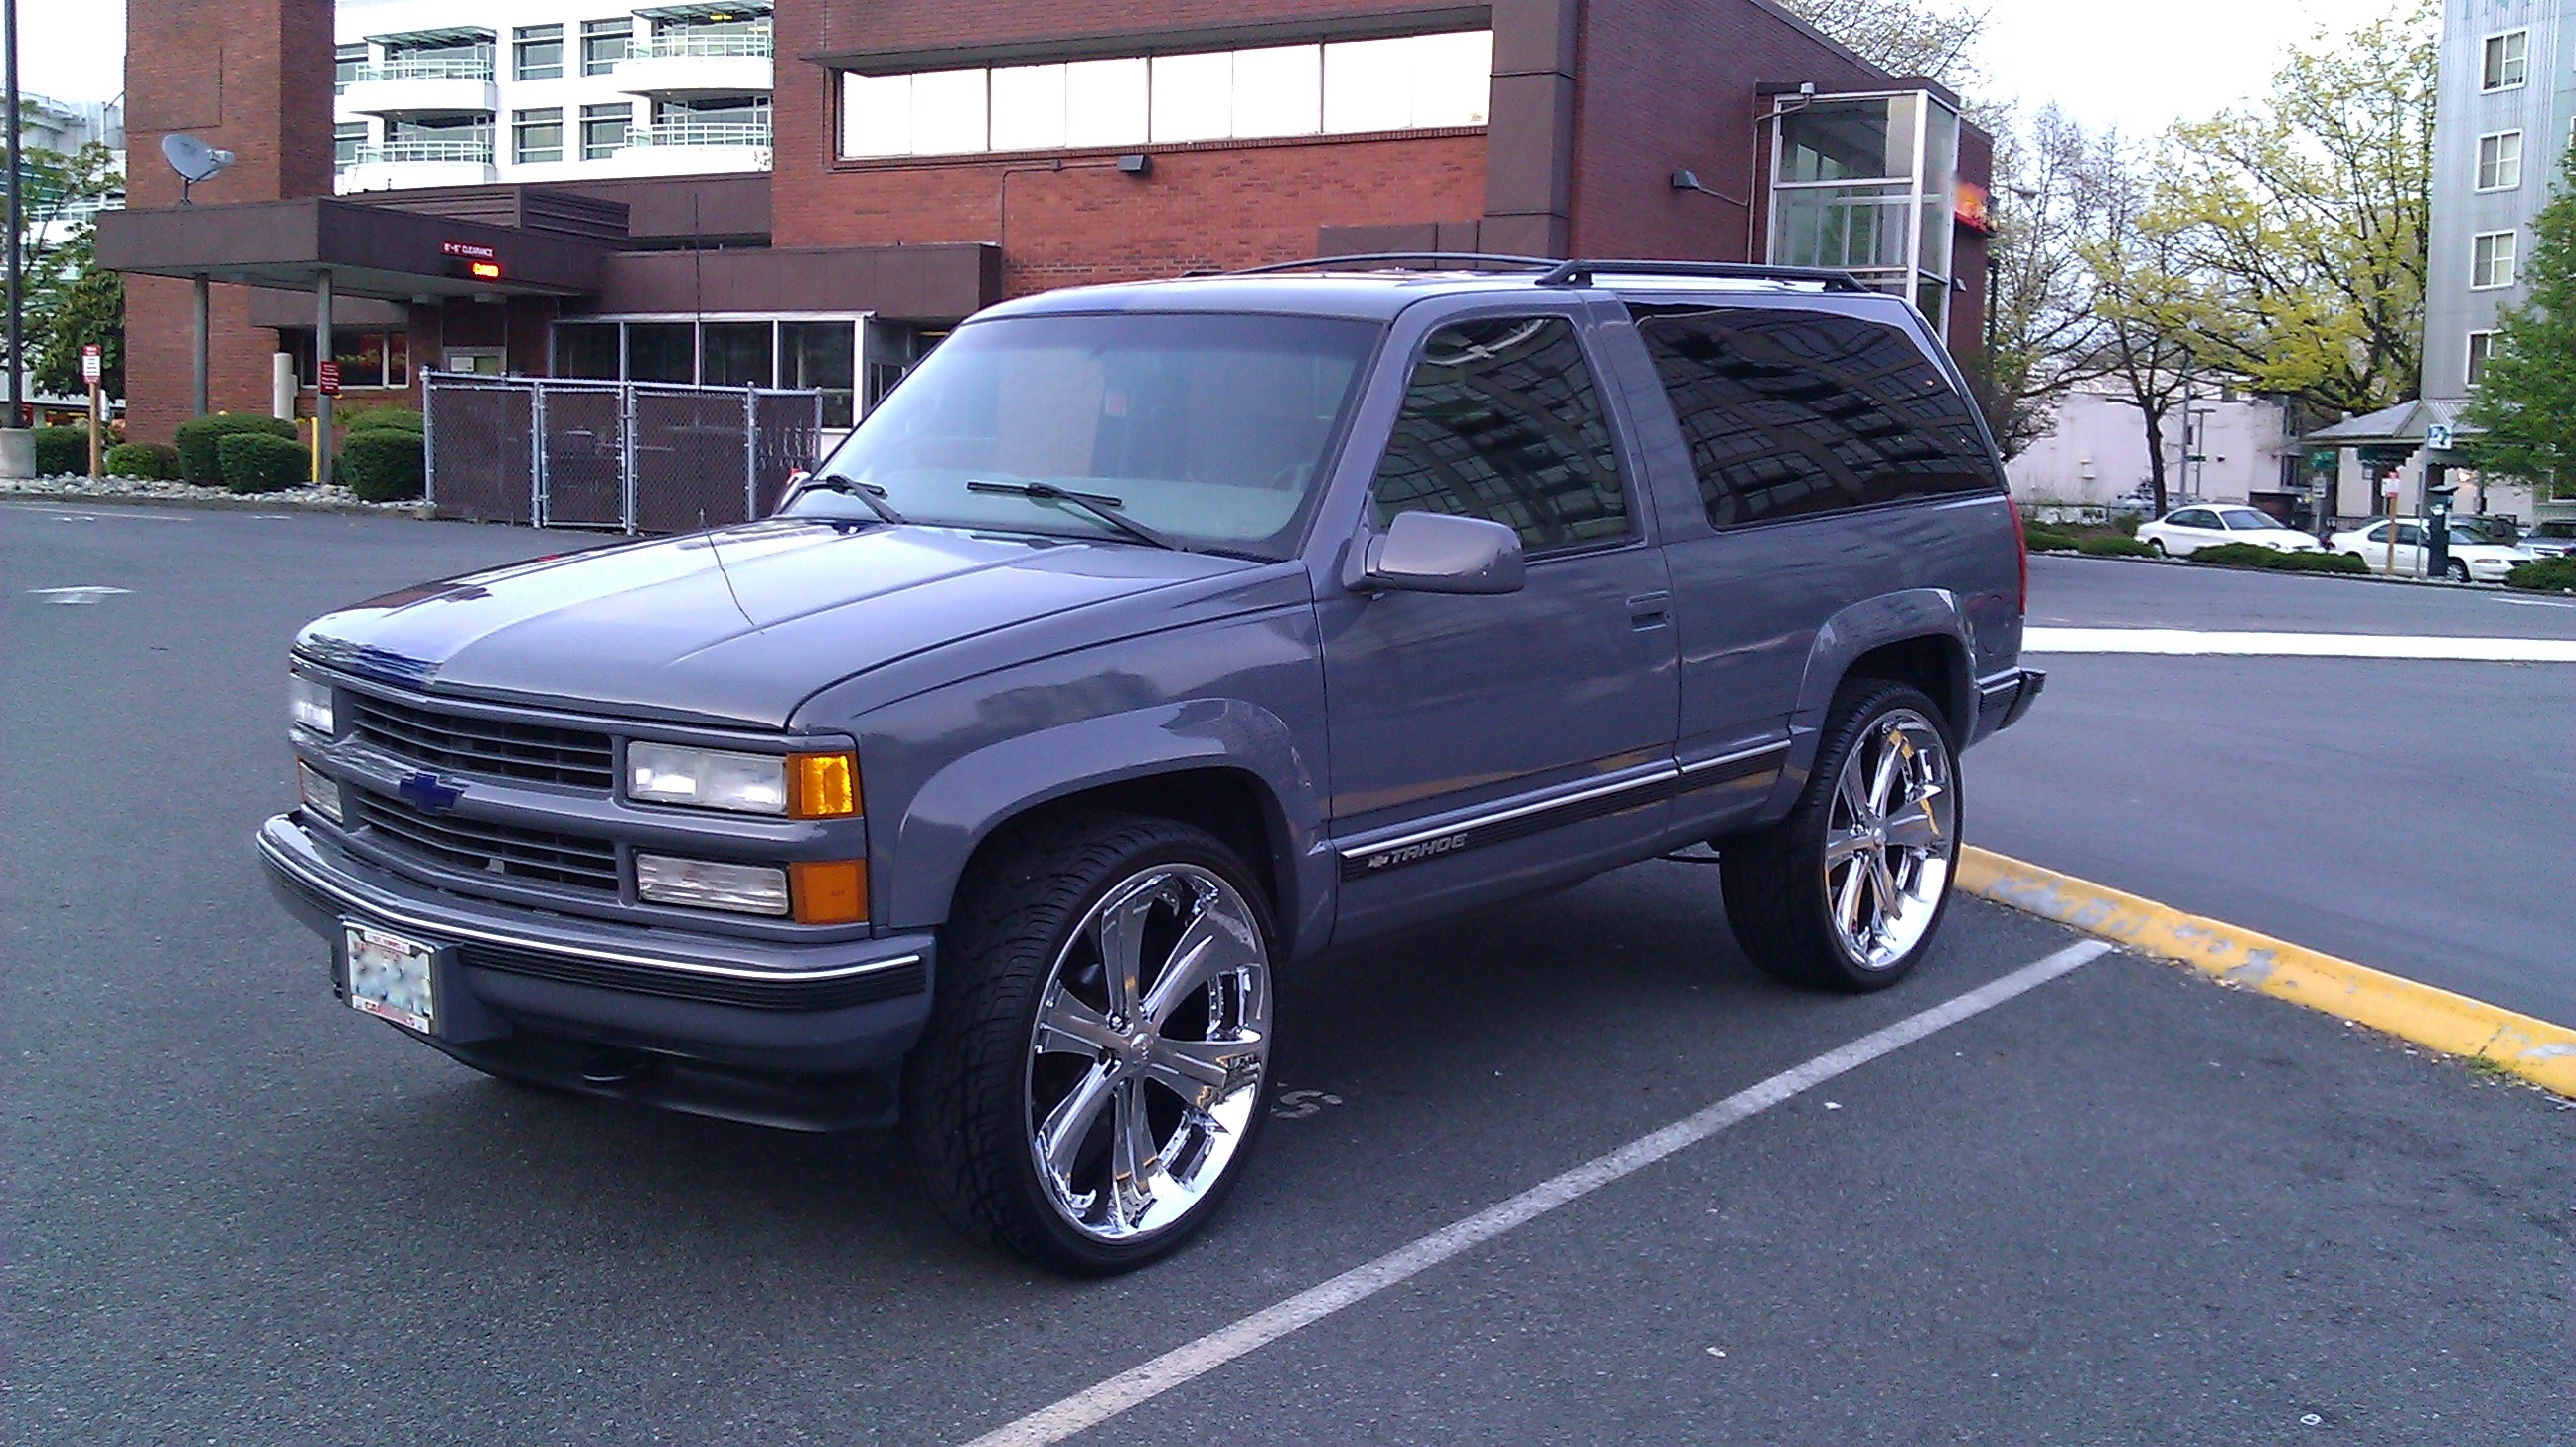 Lamarr1ftc S 1999 Chevrolet Tahoe In Washington Wa